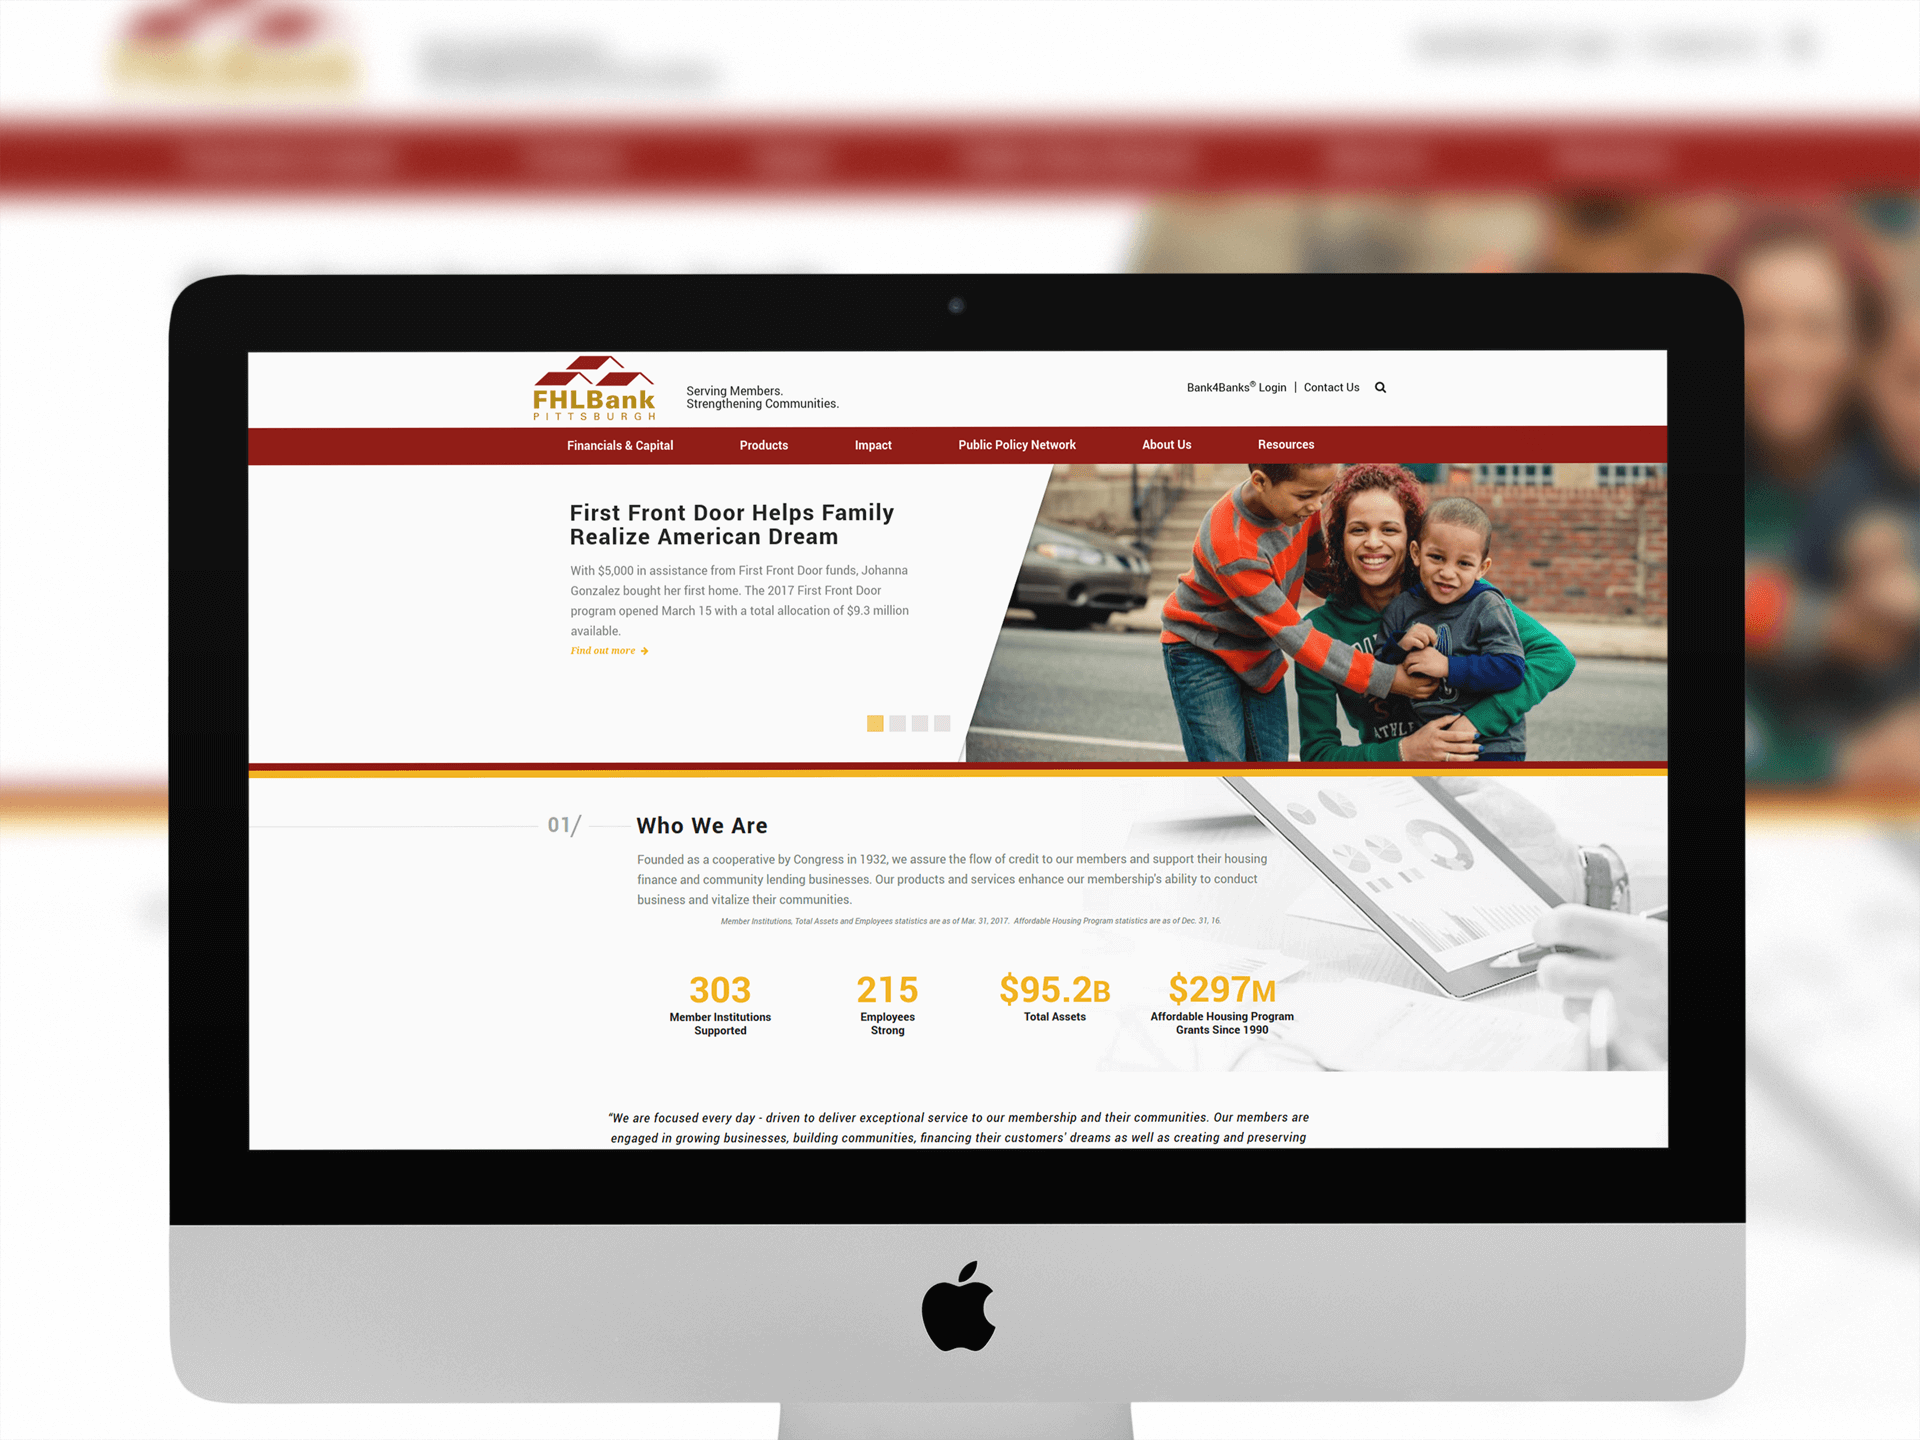 website redesign pittsburgh bank